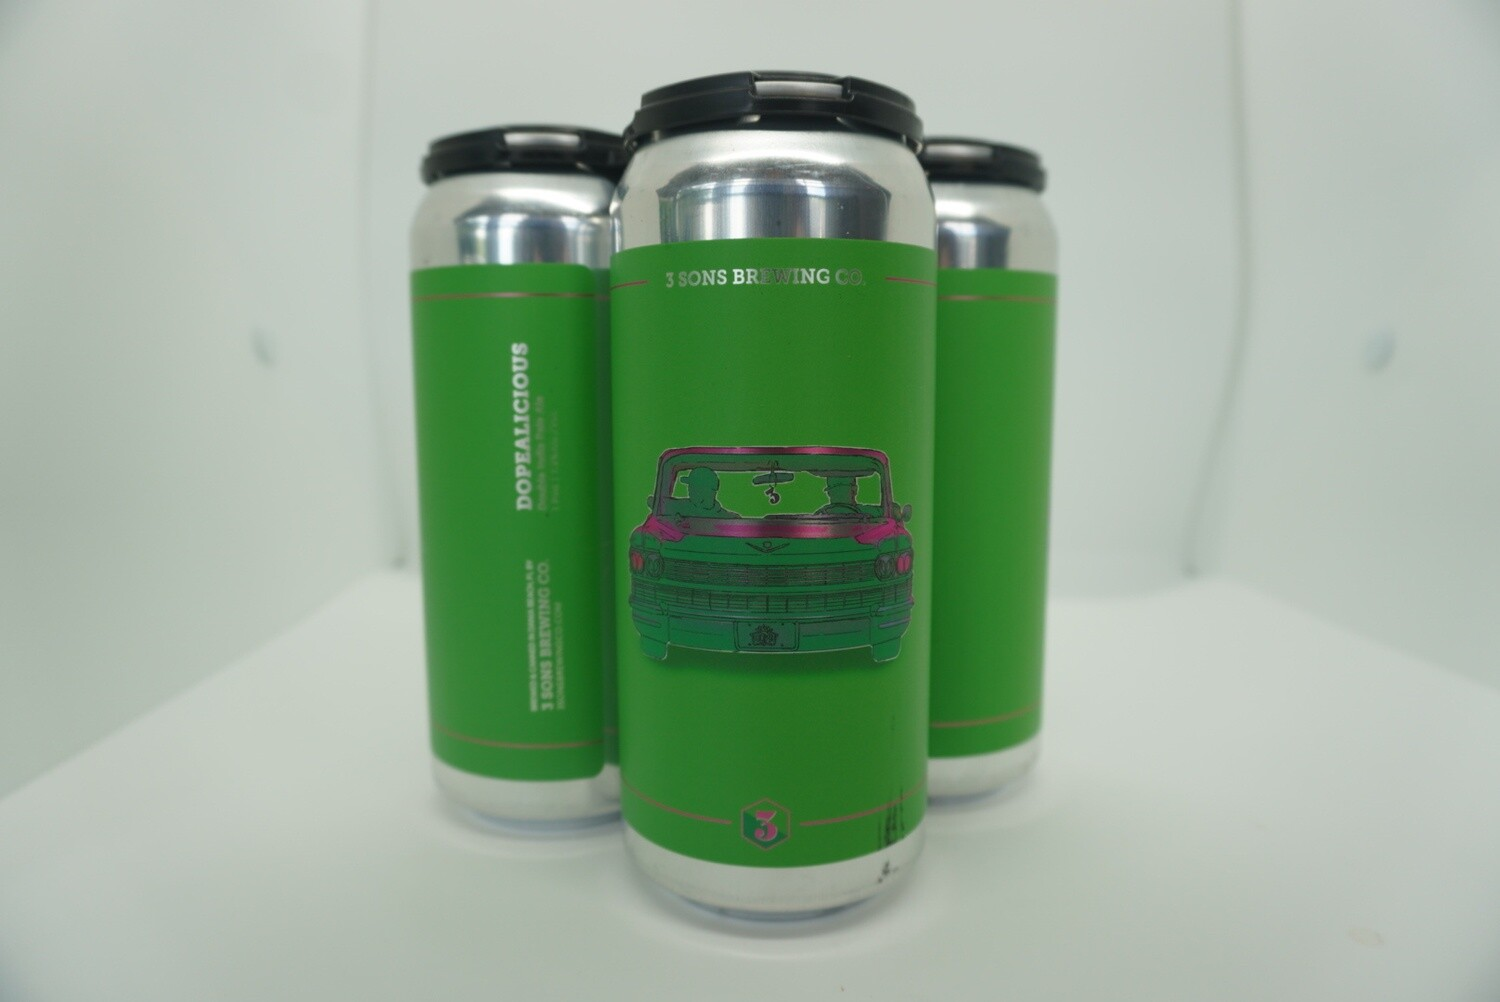 3 Sons - Dopealicious - IPA - 7.5% ABV - 4 Pack